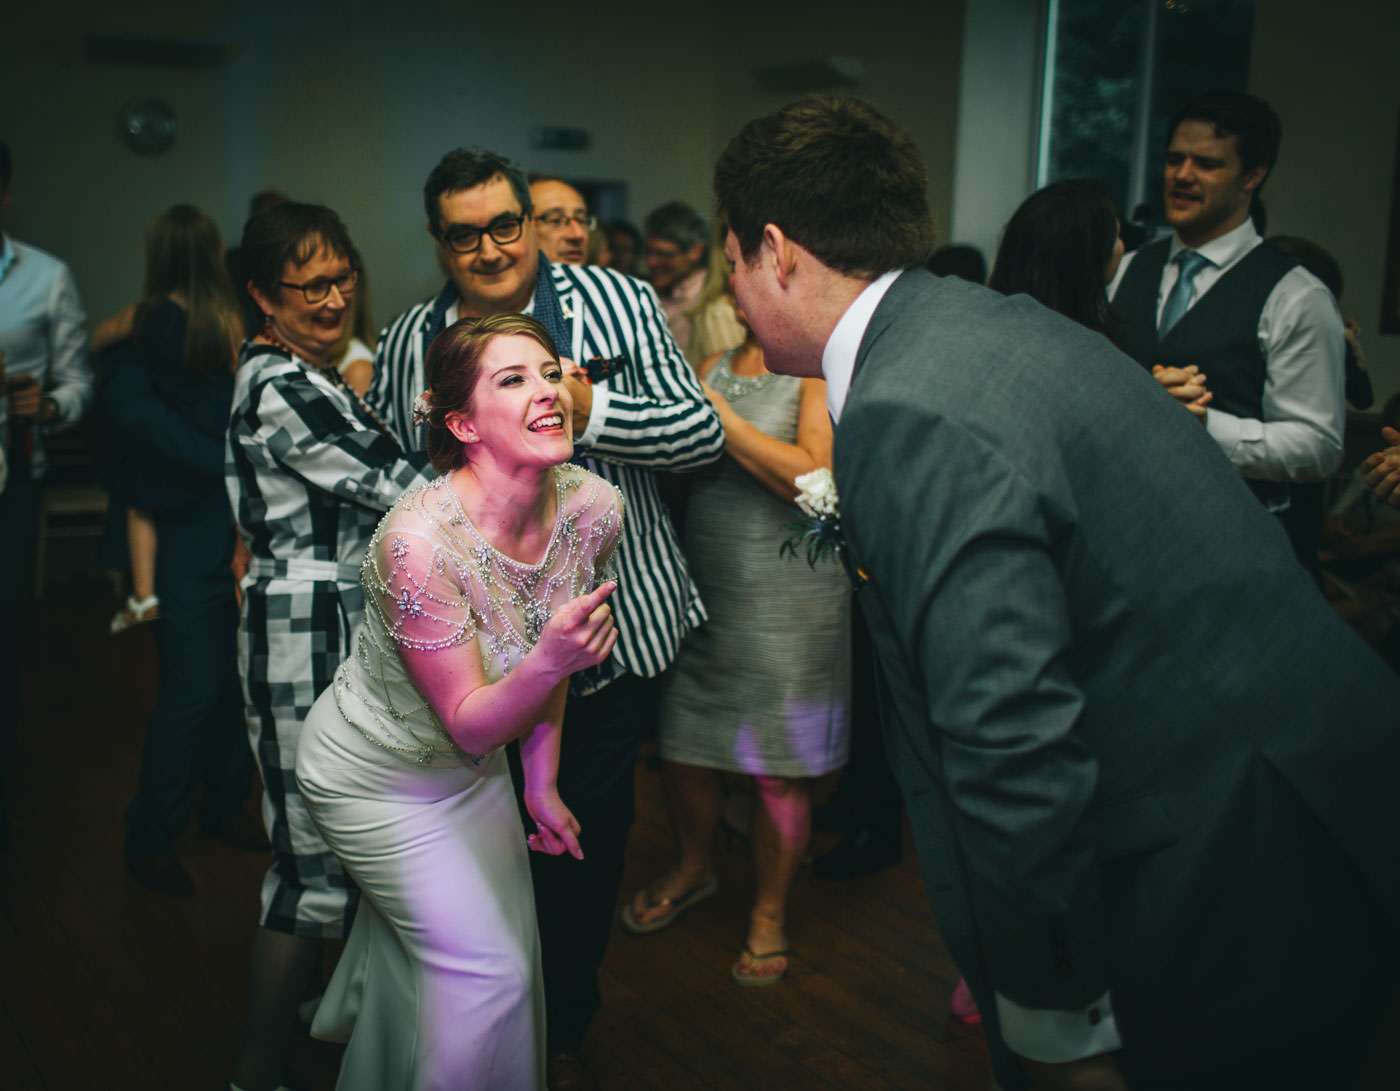 dancing - village hall wedding